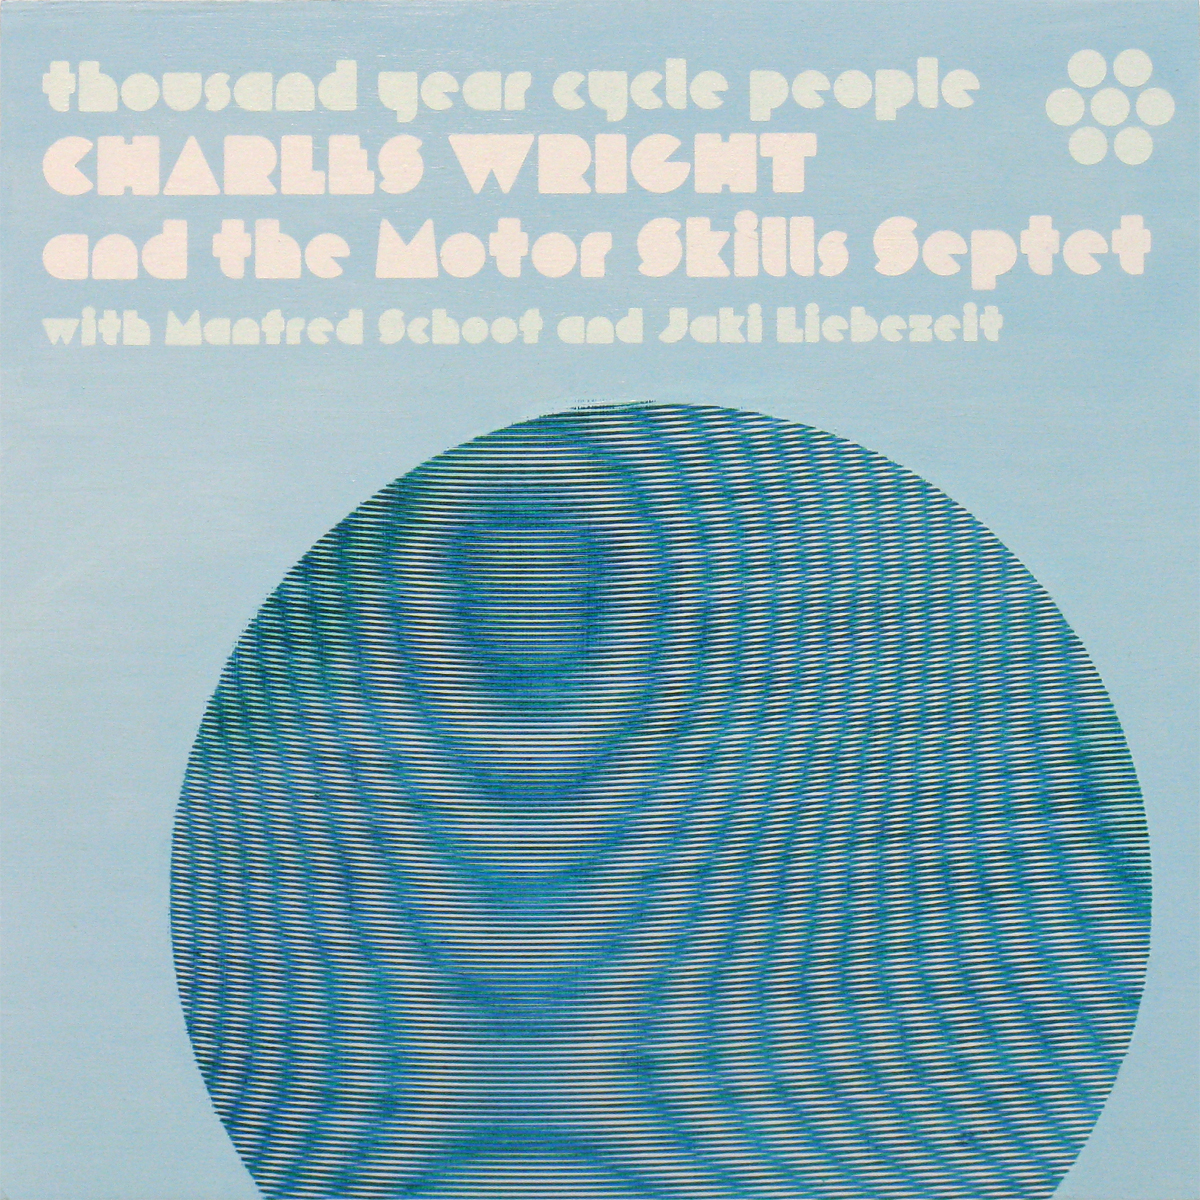 Charles Wright and the Motor Skills Septet – Thousand Year Cycle People – 1972